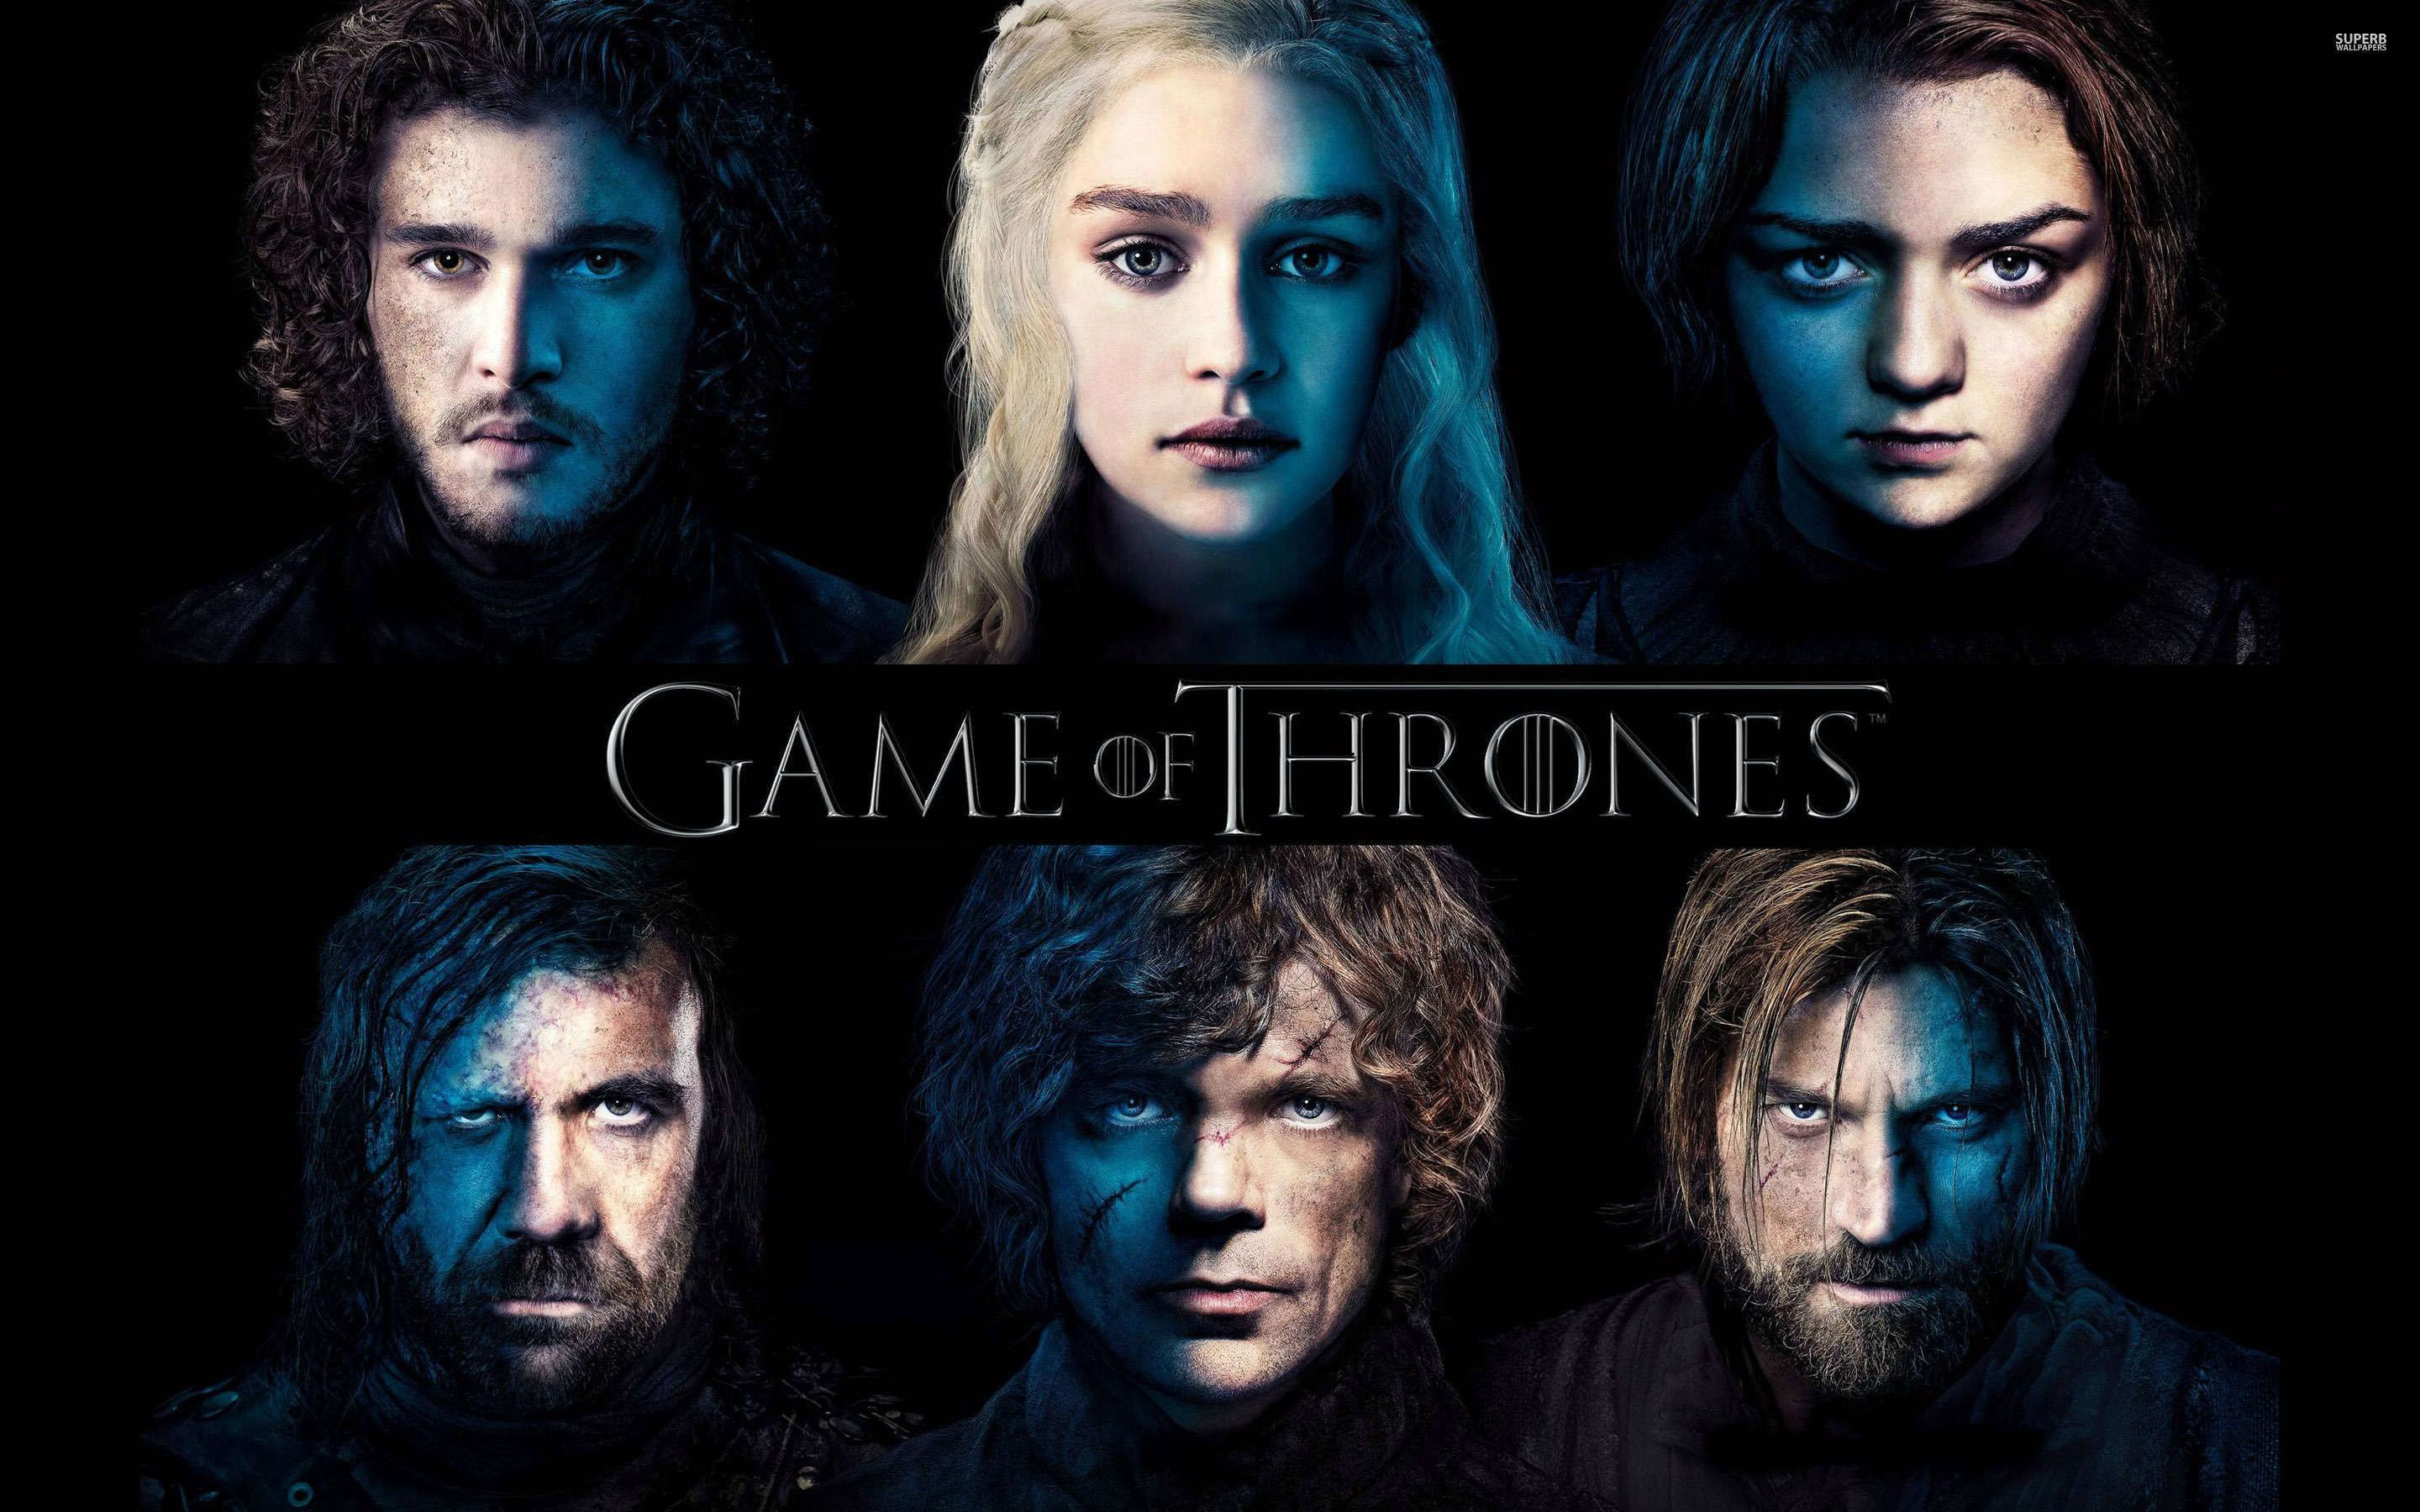 Game Of Thrones Awesome Full Hd Wallpaper 3zds83 Yoyo